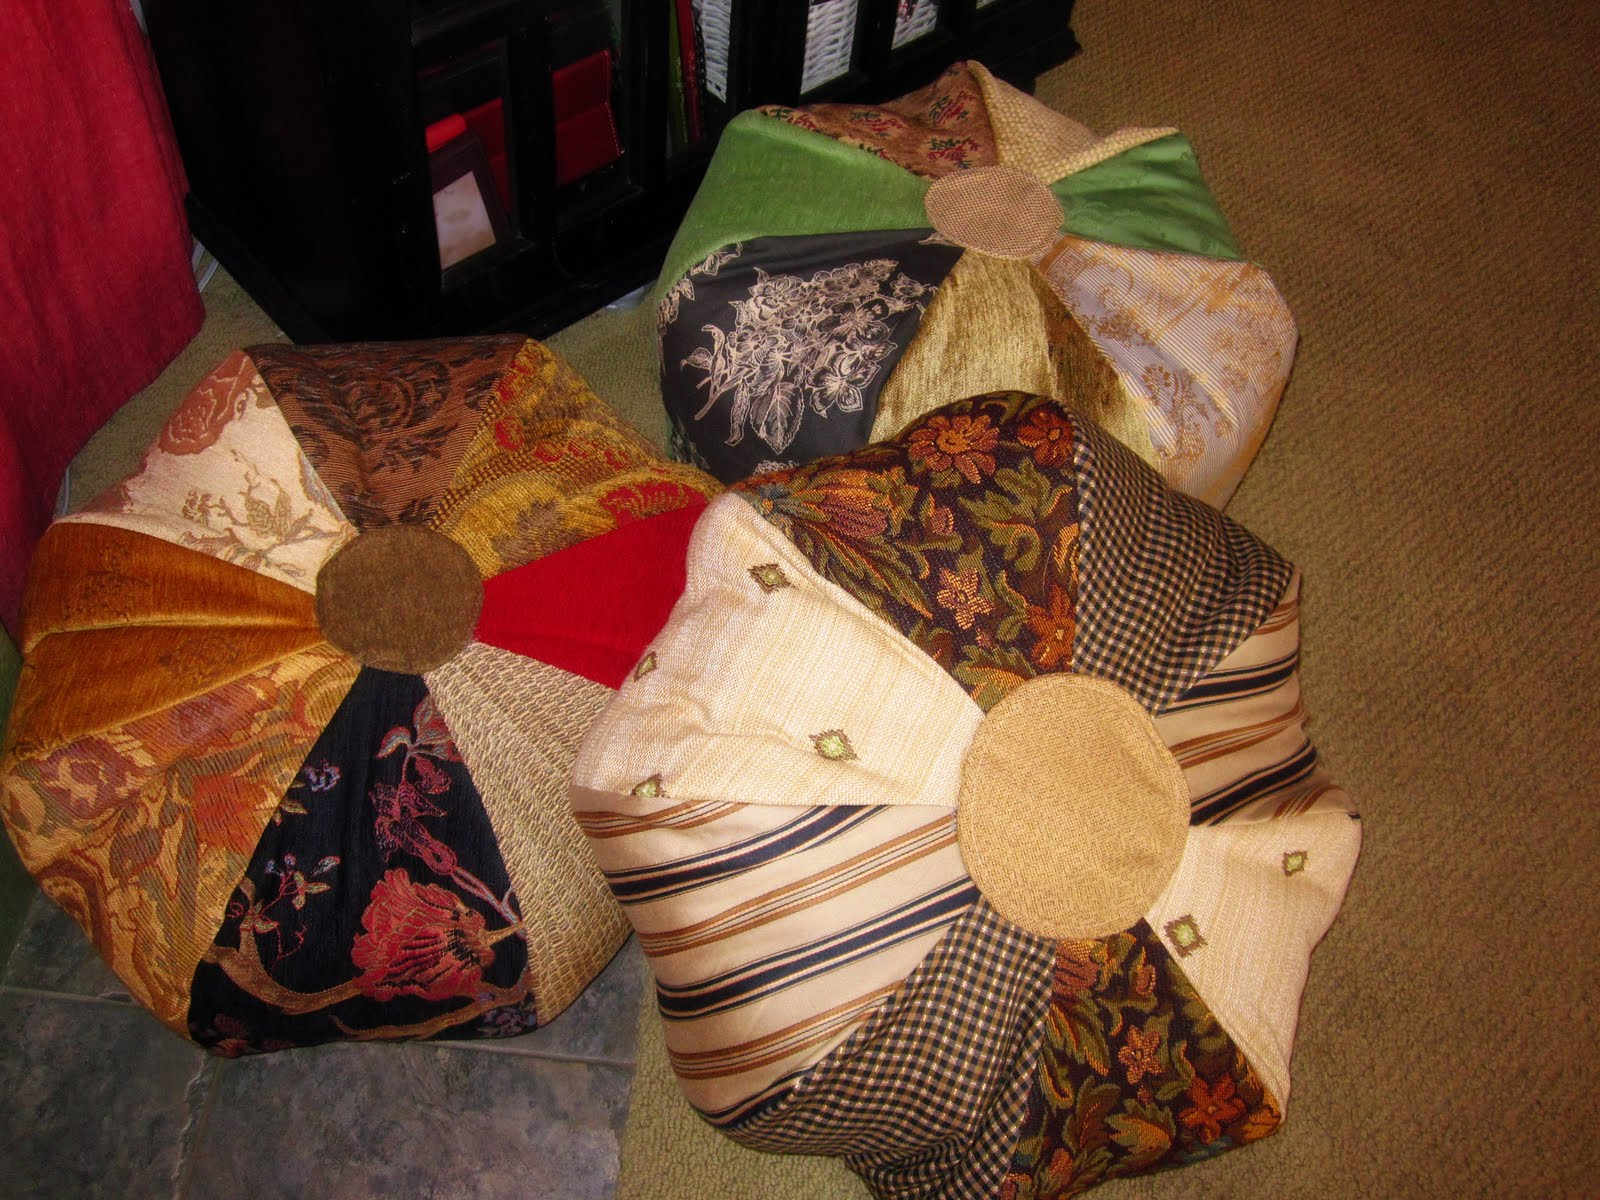 How To Make Moroccan Floor Pillows : The Curious Pebble Project: Morrocan Pouf Pillows (Semi) Tutorial